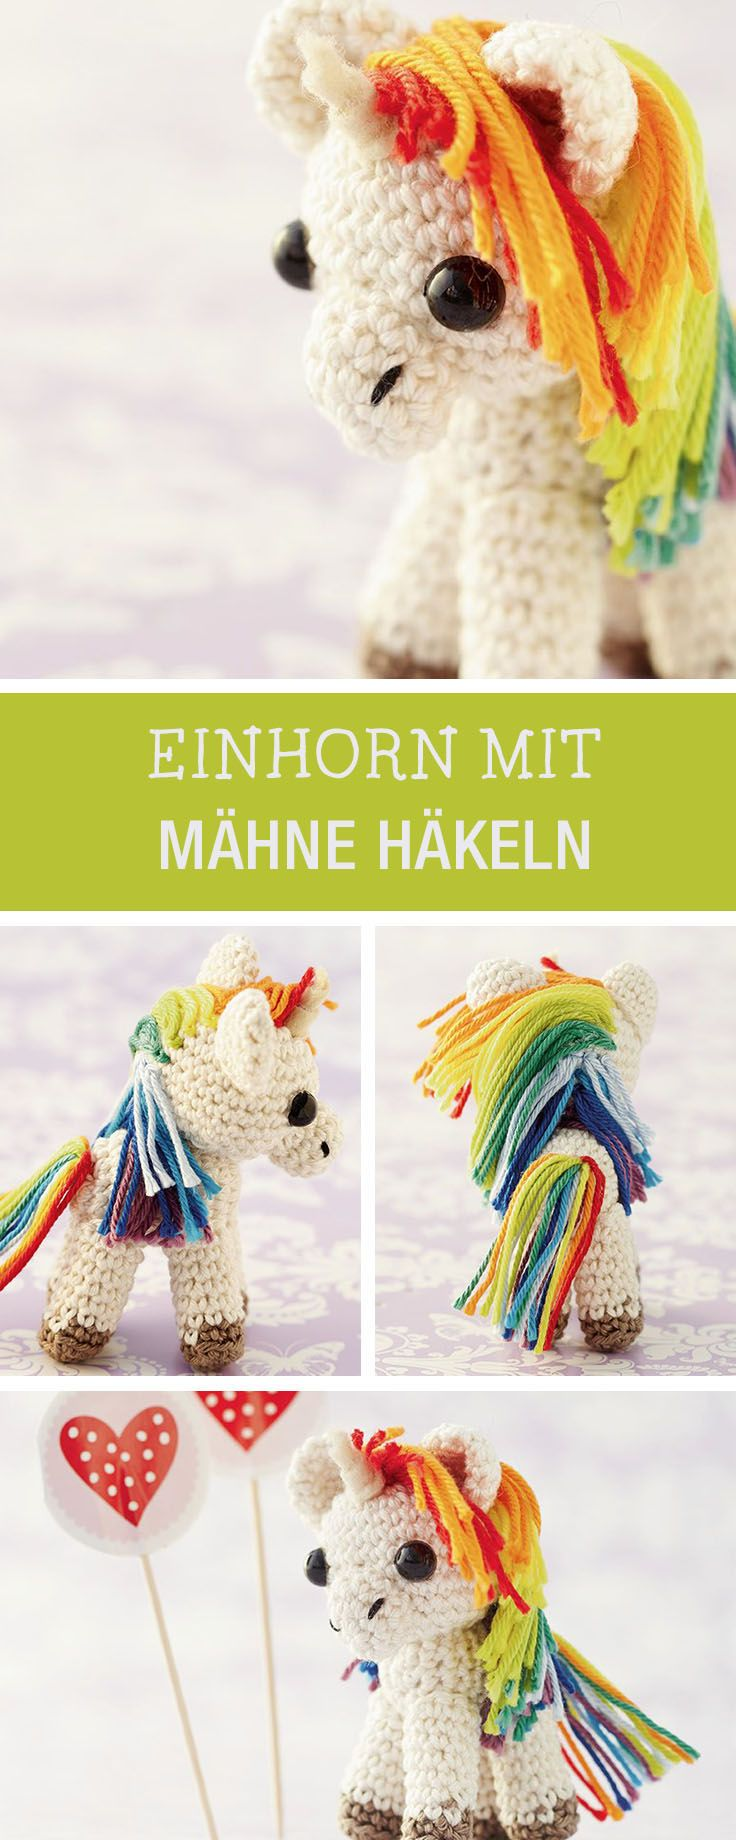 Kostenlose Anleitung für ein gehäkeltes Einhorn mit Regenbogenmähne / diy crochet tutorial for a rainbow unicorn, amigurumi via DaWanda.com